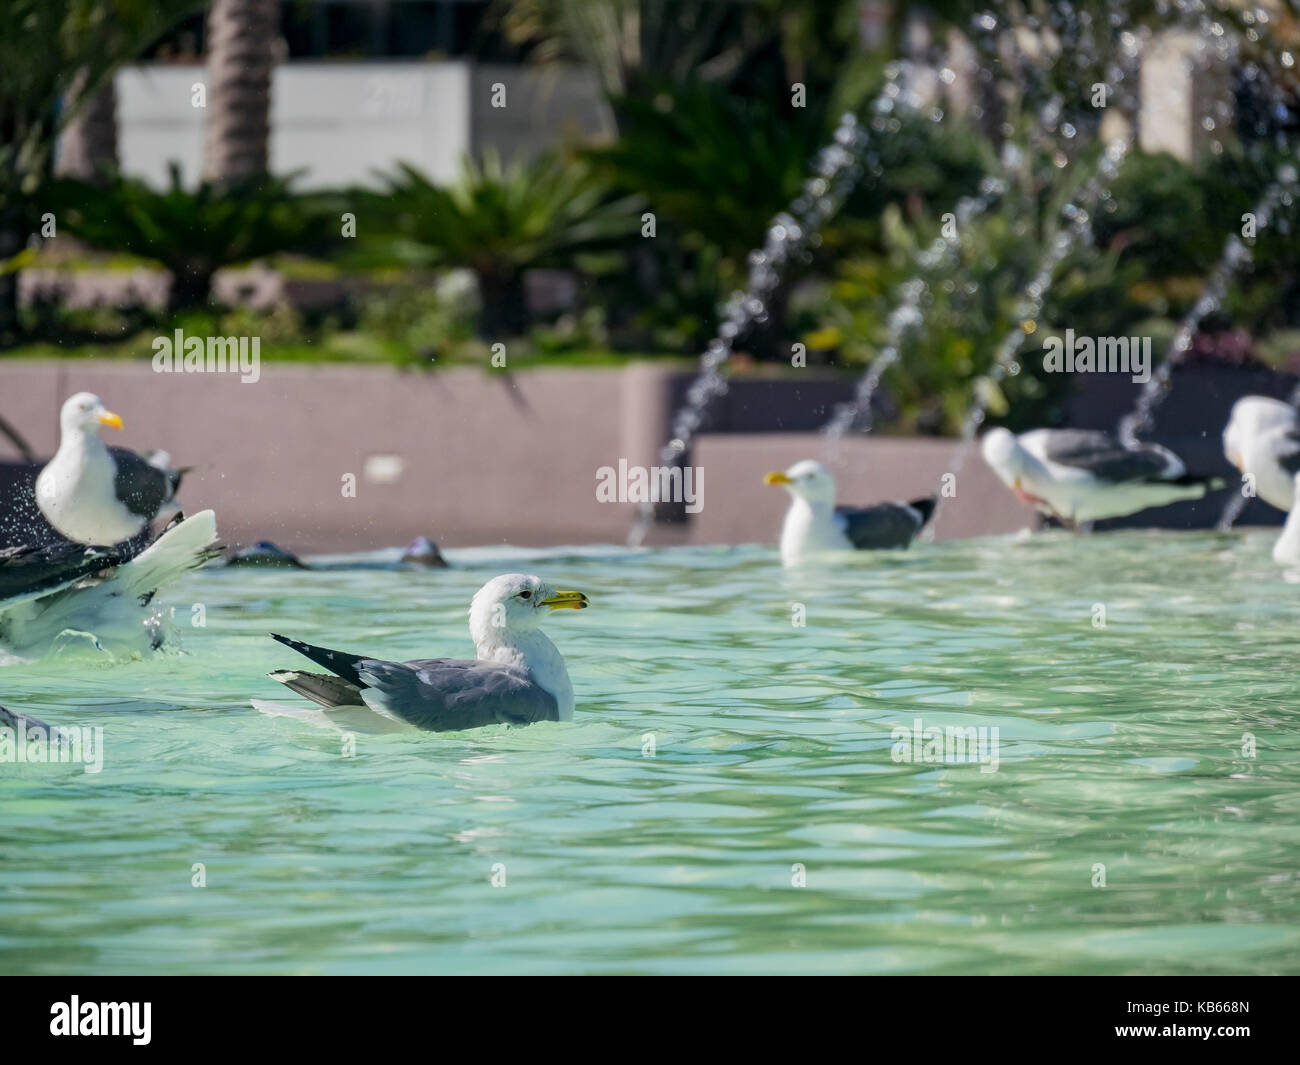 bird playing in water stock photos bird playing in water stock images alamy. Black Bedroom Furniture Sets. Home Design Ideas